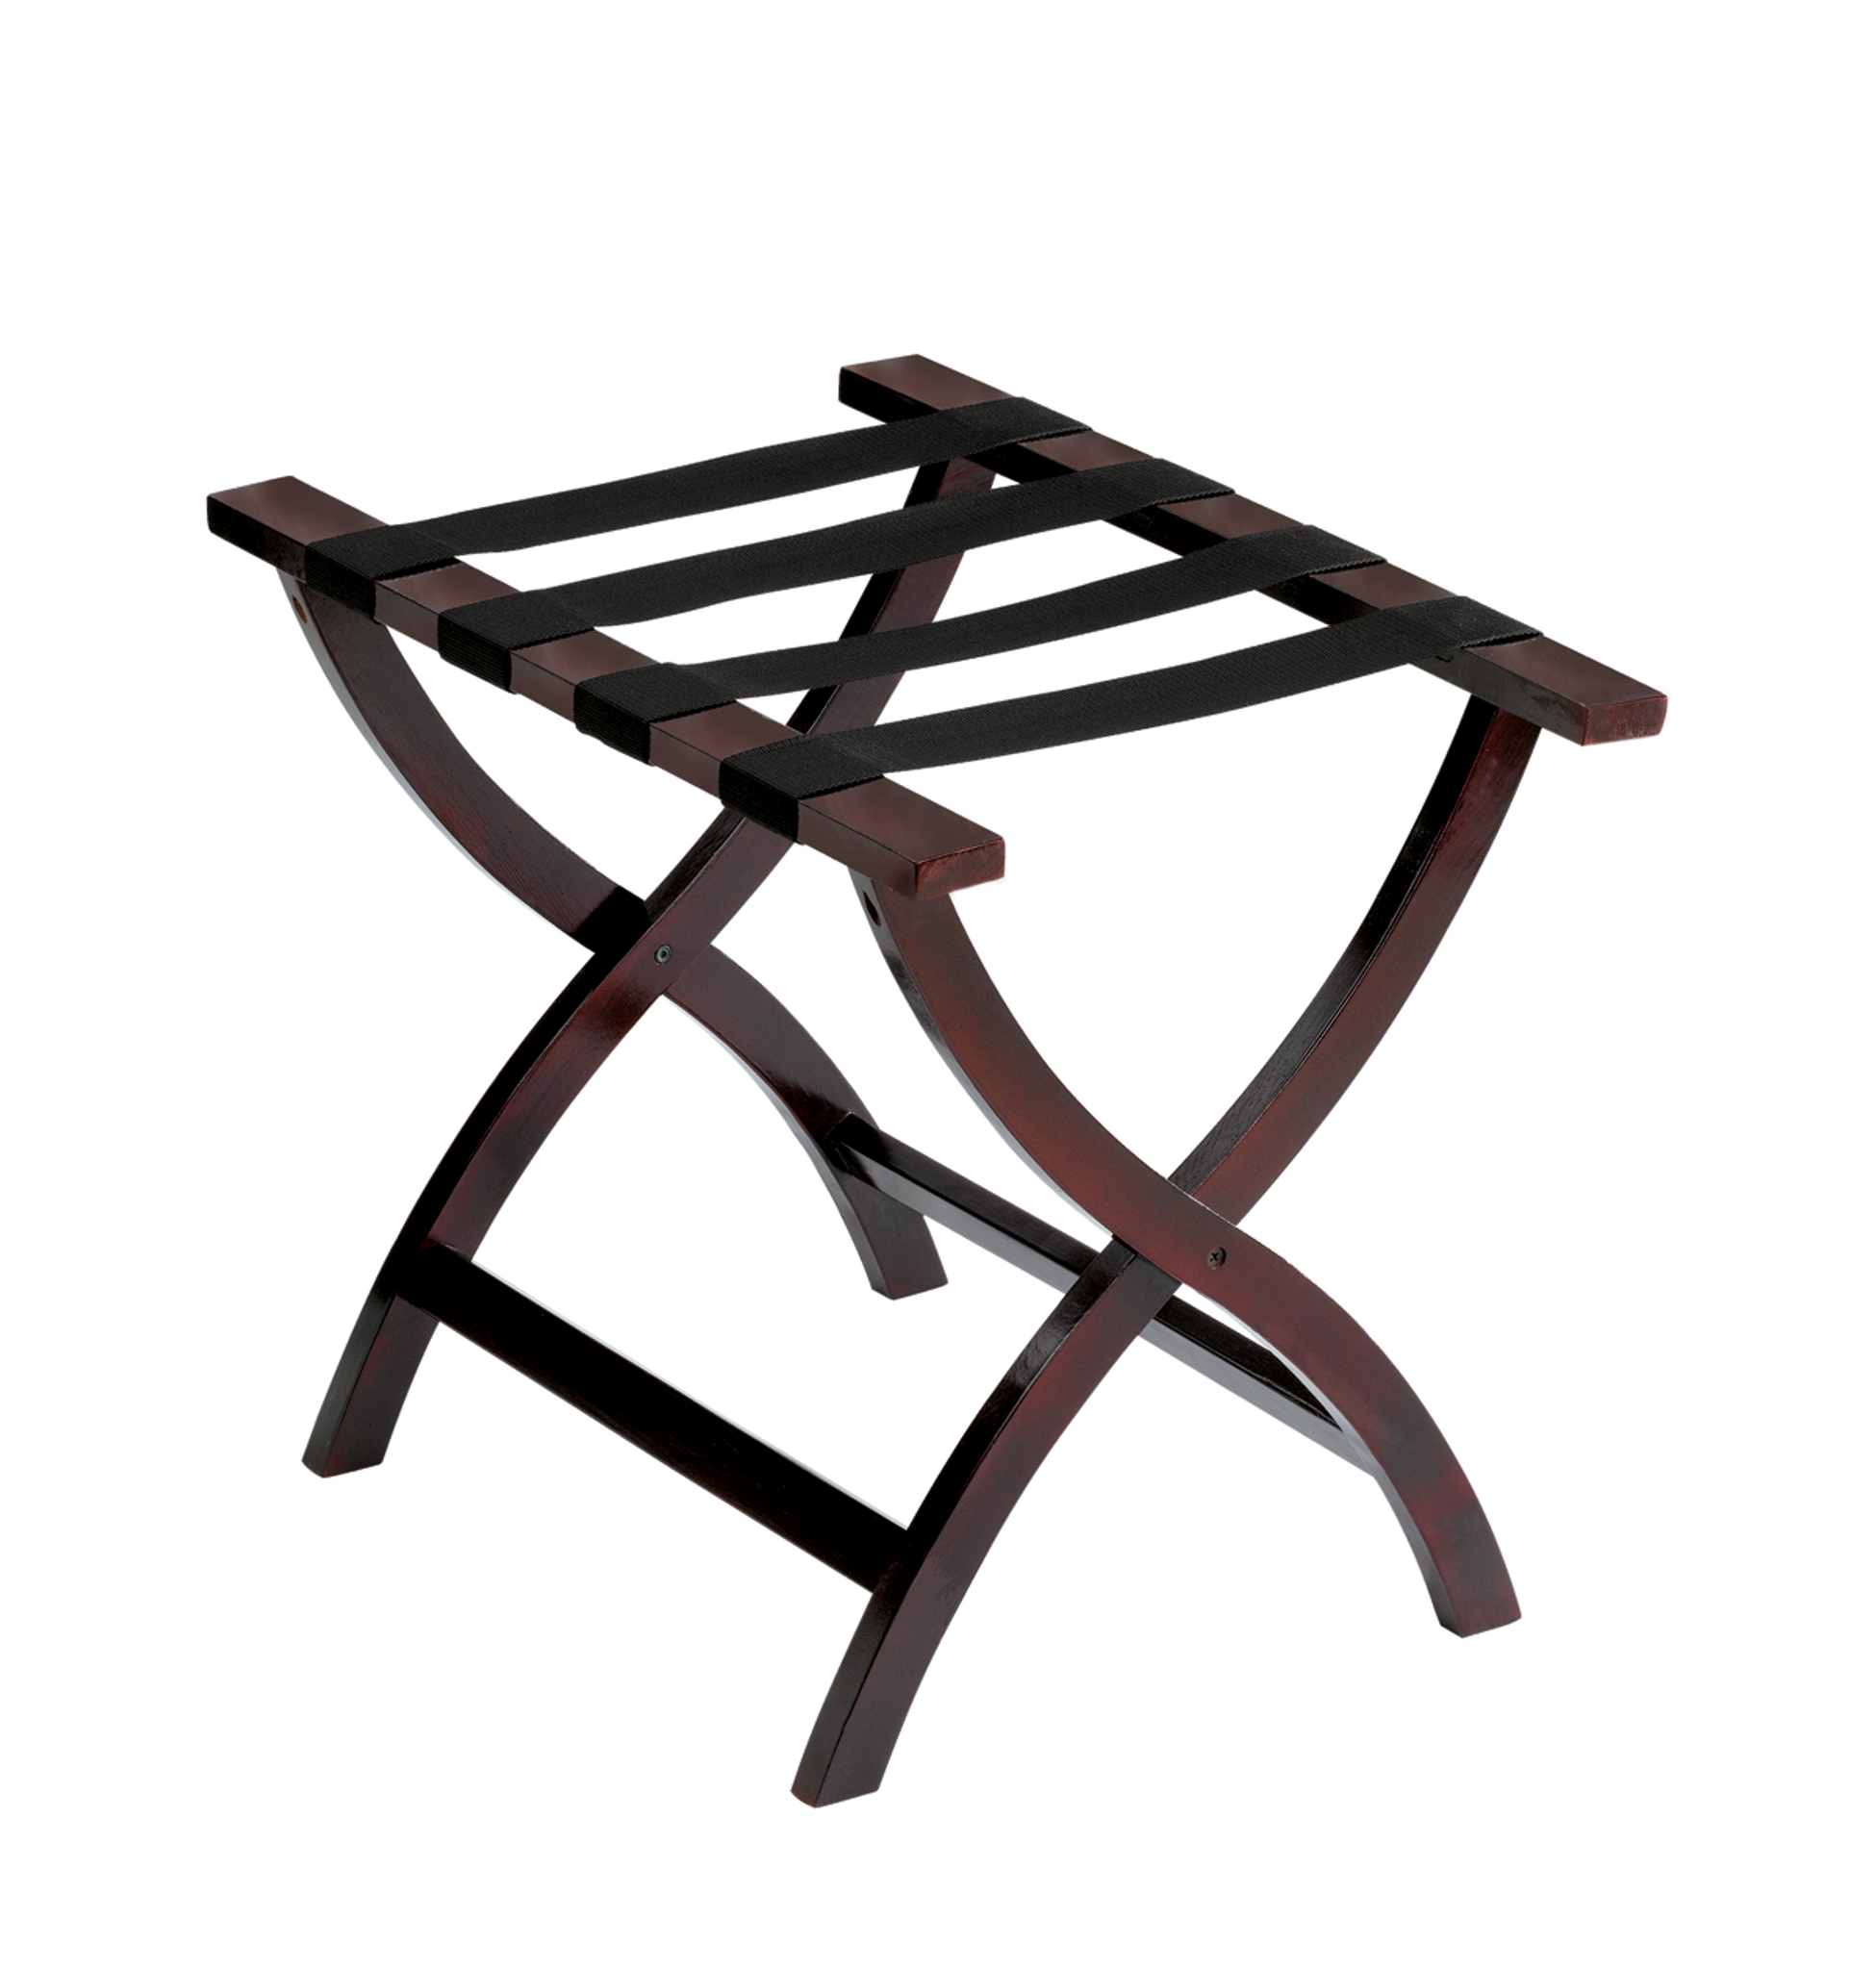 Genial Luggage Rack, Hotel Luggage Rack, Wooden Luggage Rack, Suitcase Stand